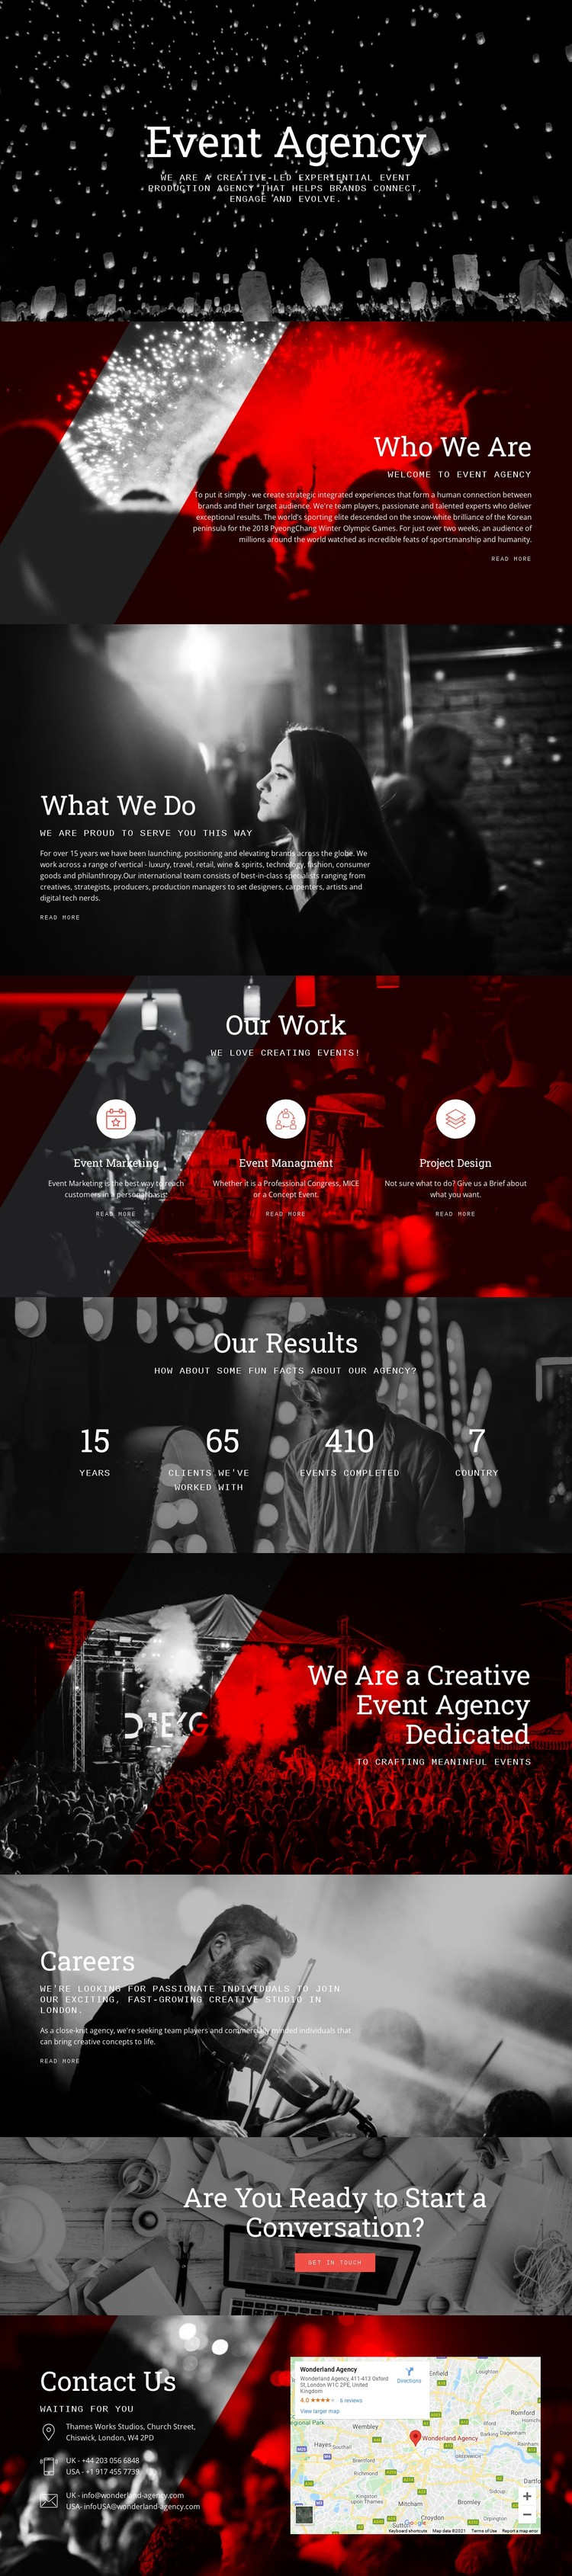 Event Agency CSS Template